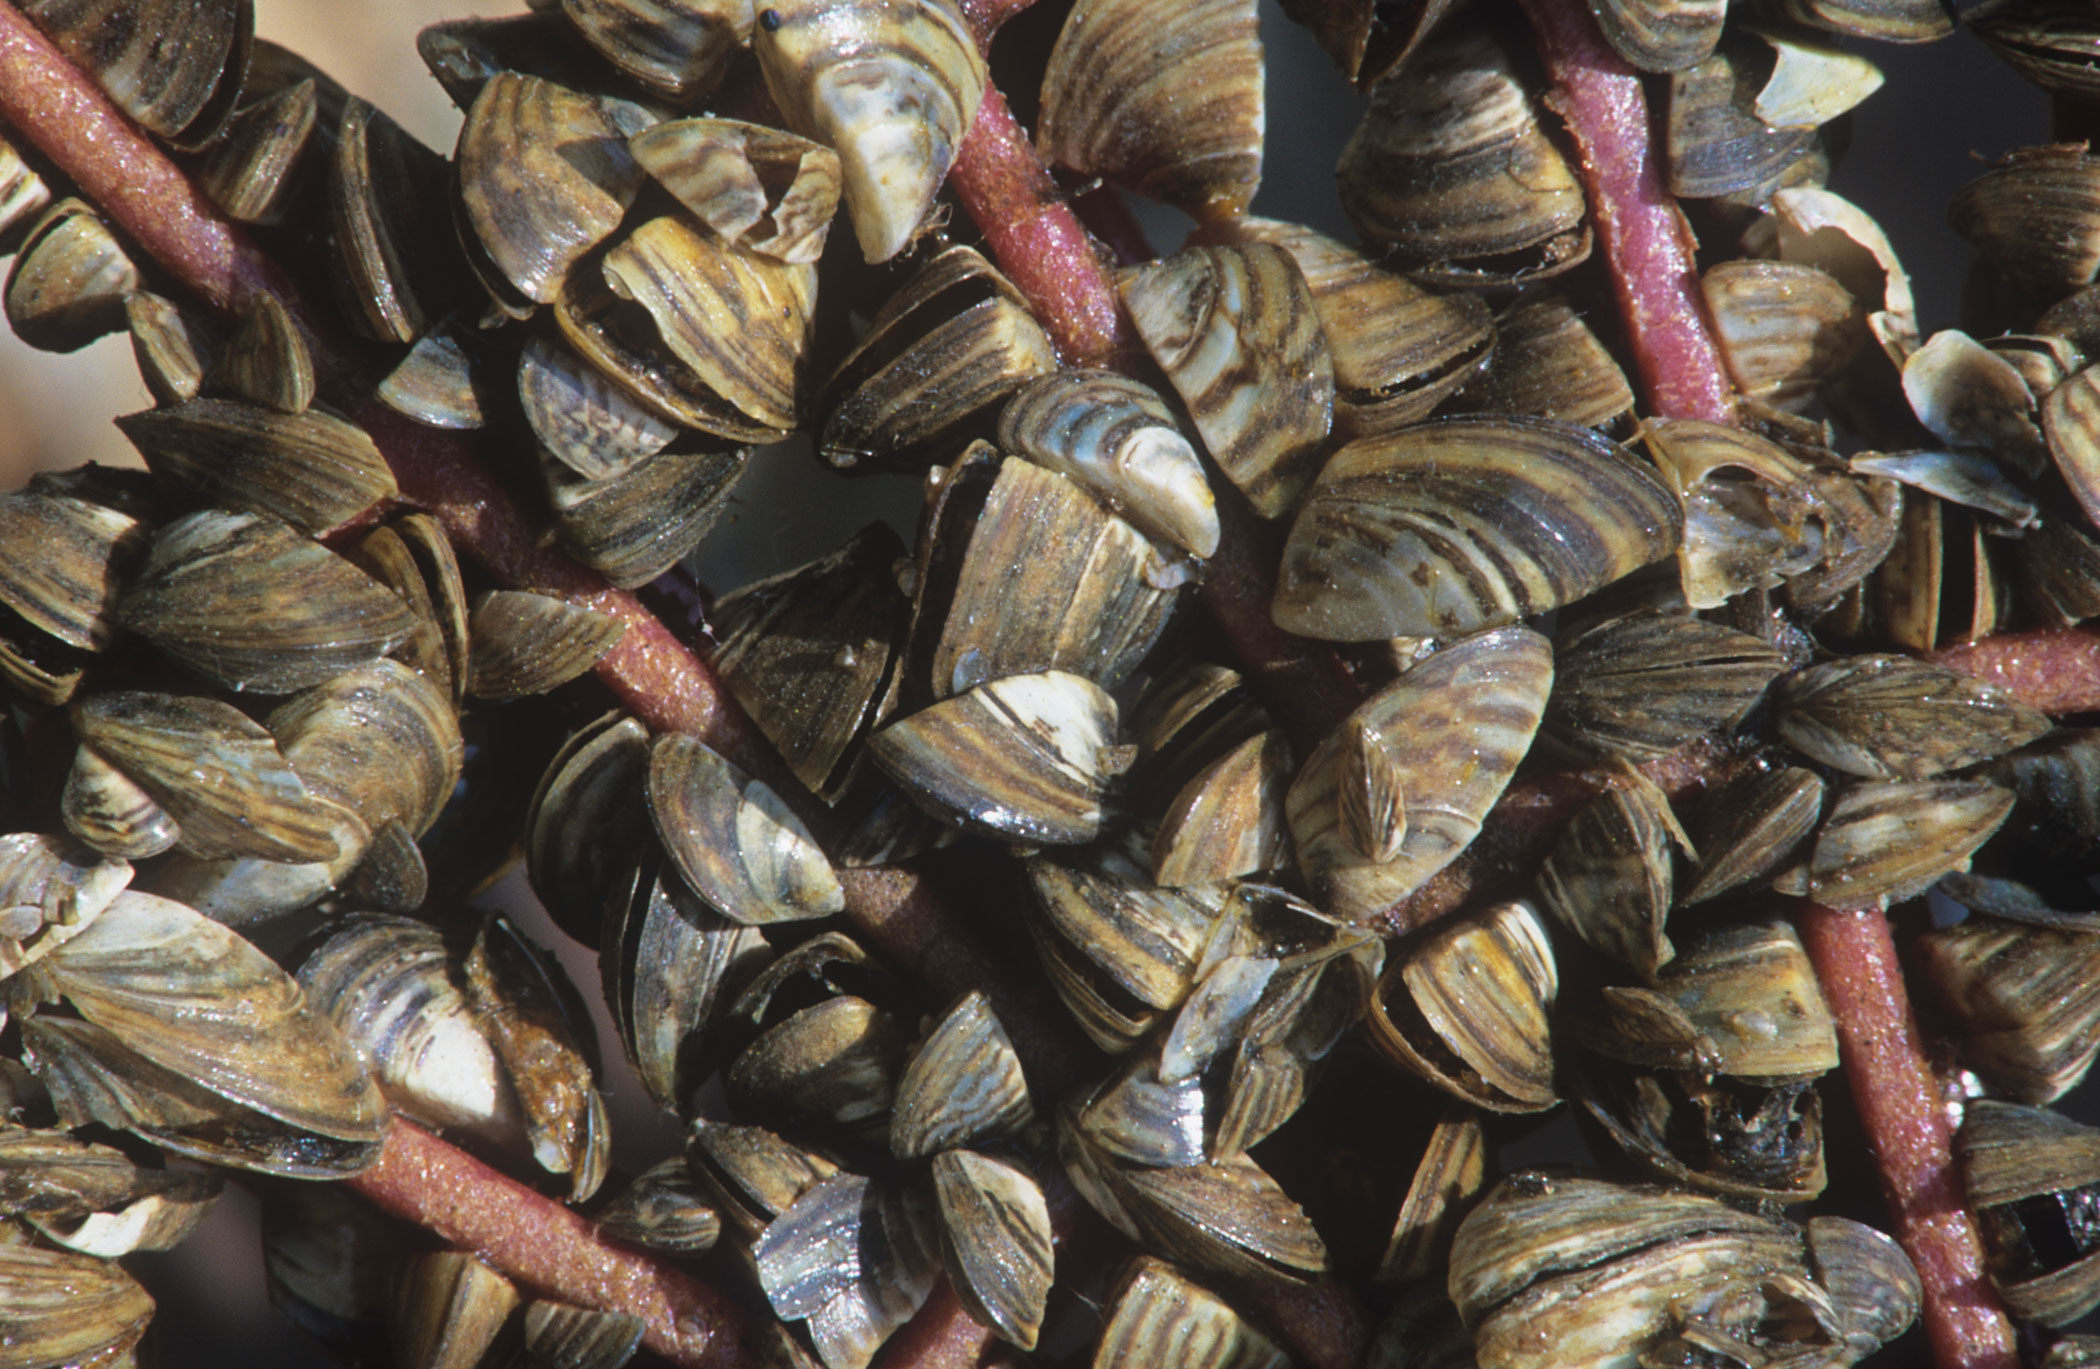 Zebra mussels, an invasive species native to the Caspian Sea, are thought to have hitched a ride to the midwestern Great Lakes in the late 1980s by clinging to the hulls of U.S.–bound European vessels. The unwelcome visitors, which have since spread east to New England, are known to feed on the phytoplankton.